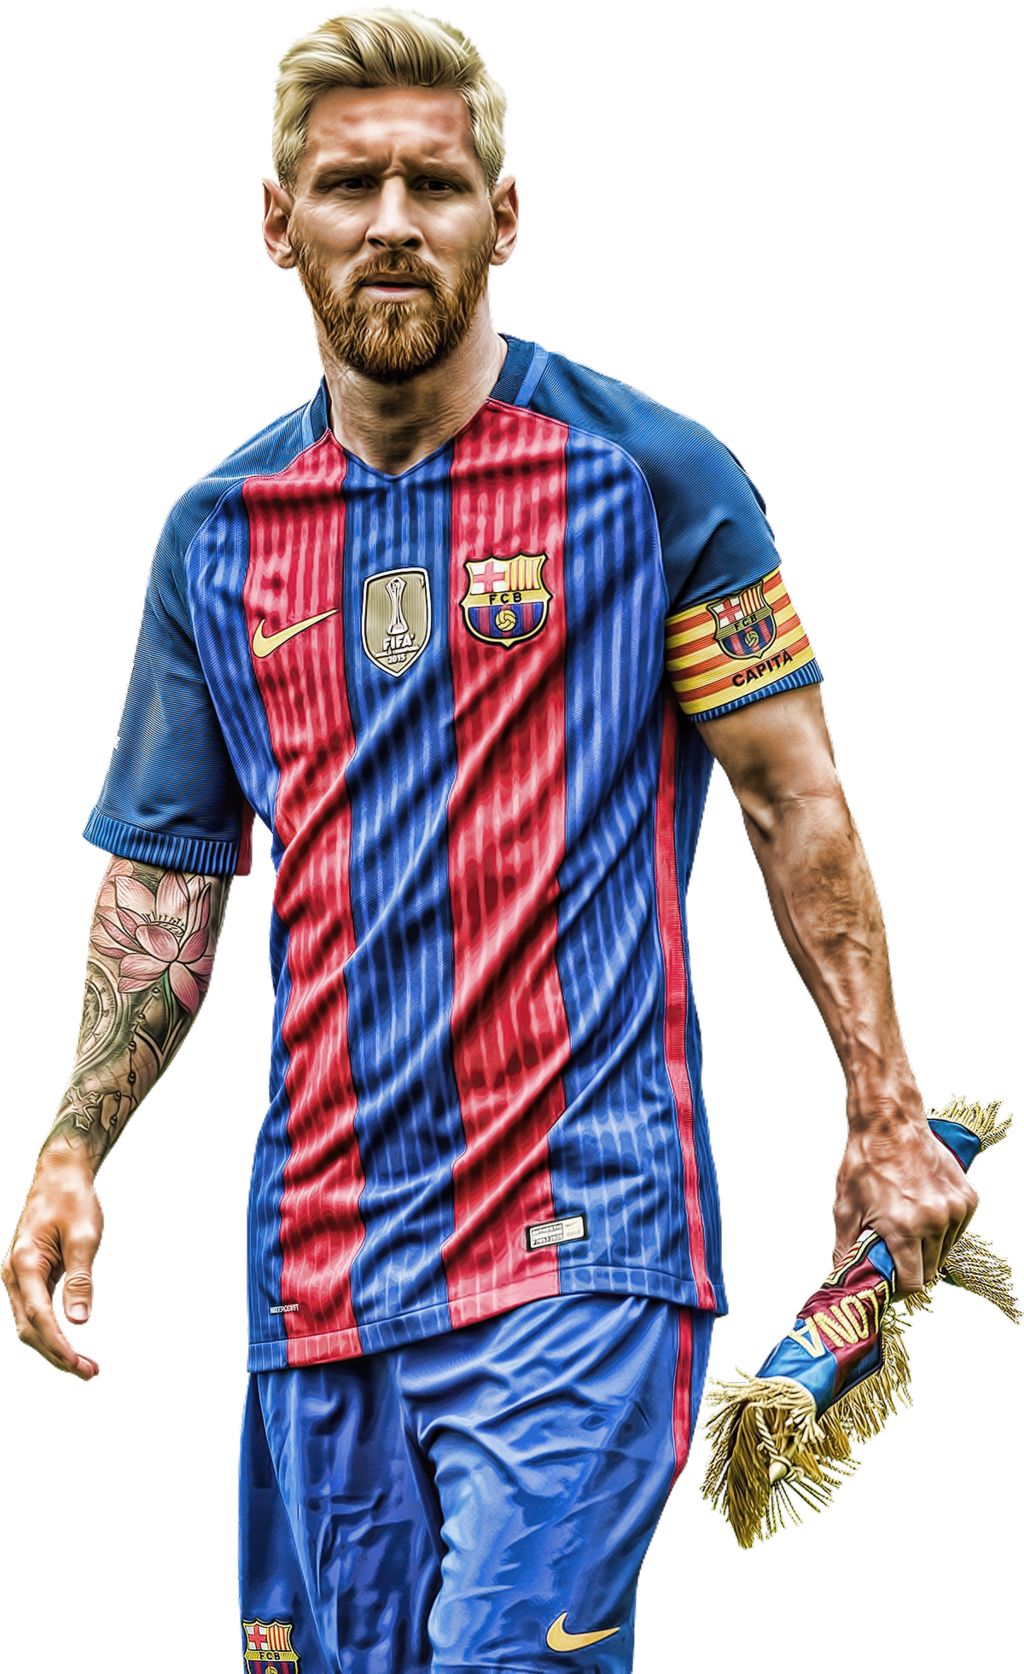 bfceaddbdfdb-messi-football-wallpaper-wp3002176